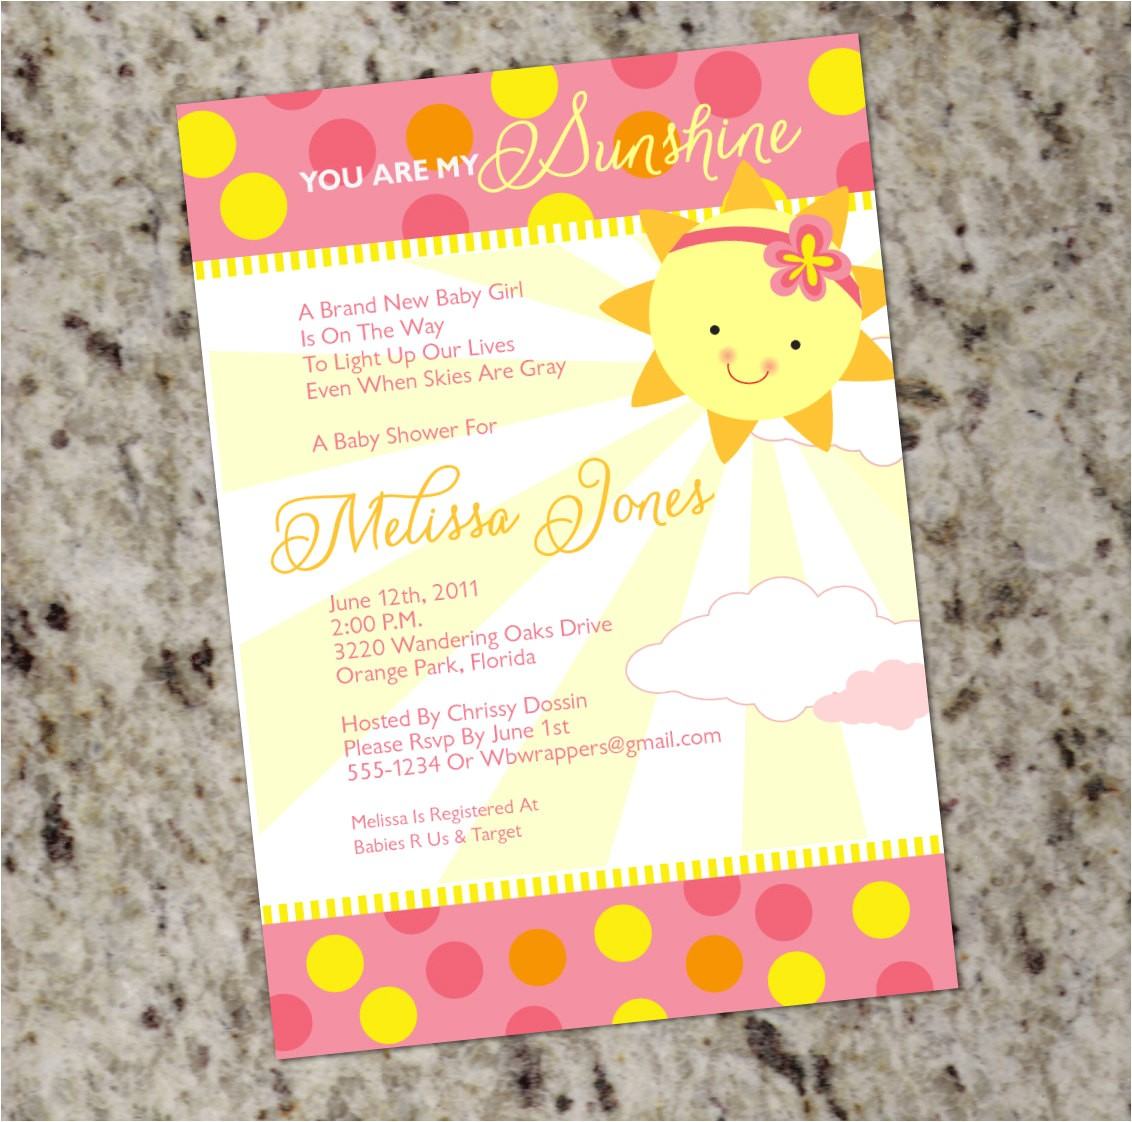 You are My Sunshine Baby Shower Invites You are My Sunshine Baby Shower Invitations Girly Summer